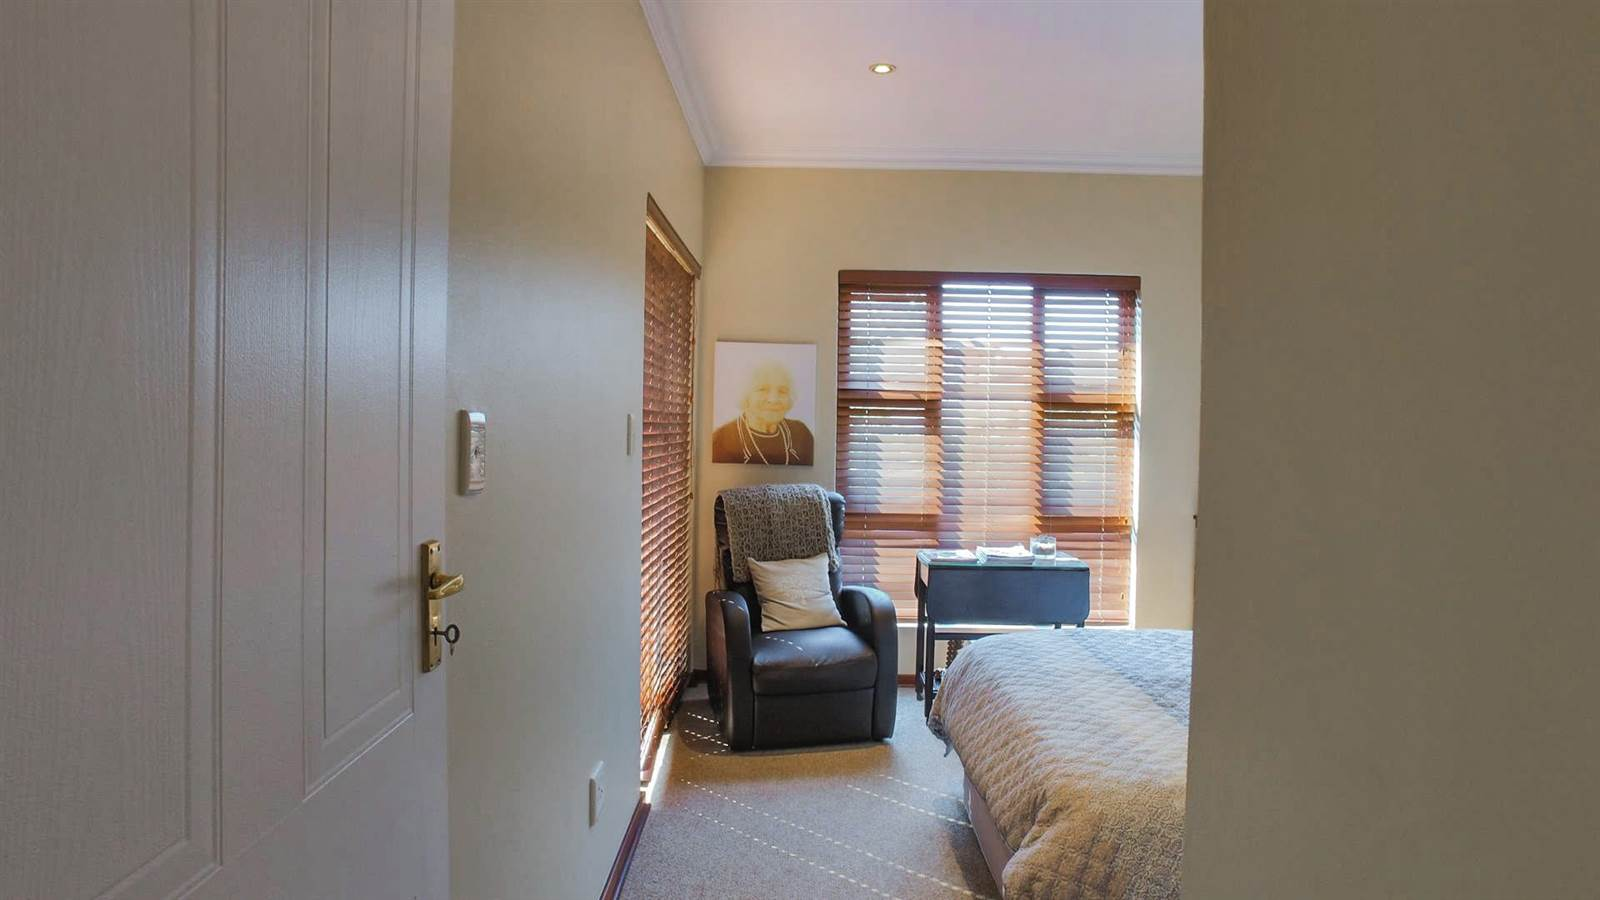 4 Bedroom Townhouse for sale in Mulbarton ENT0067436 : photo#19